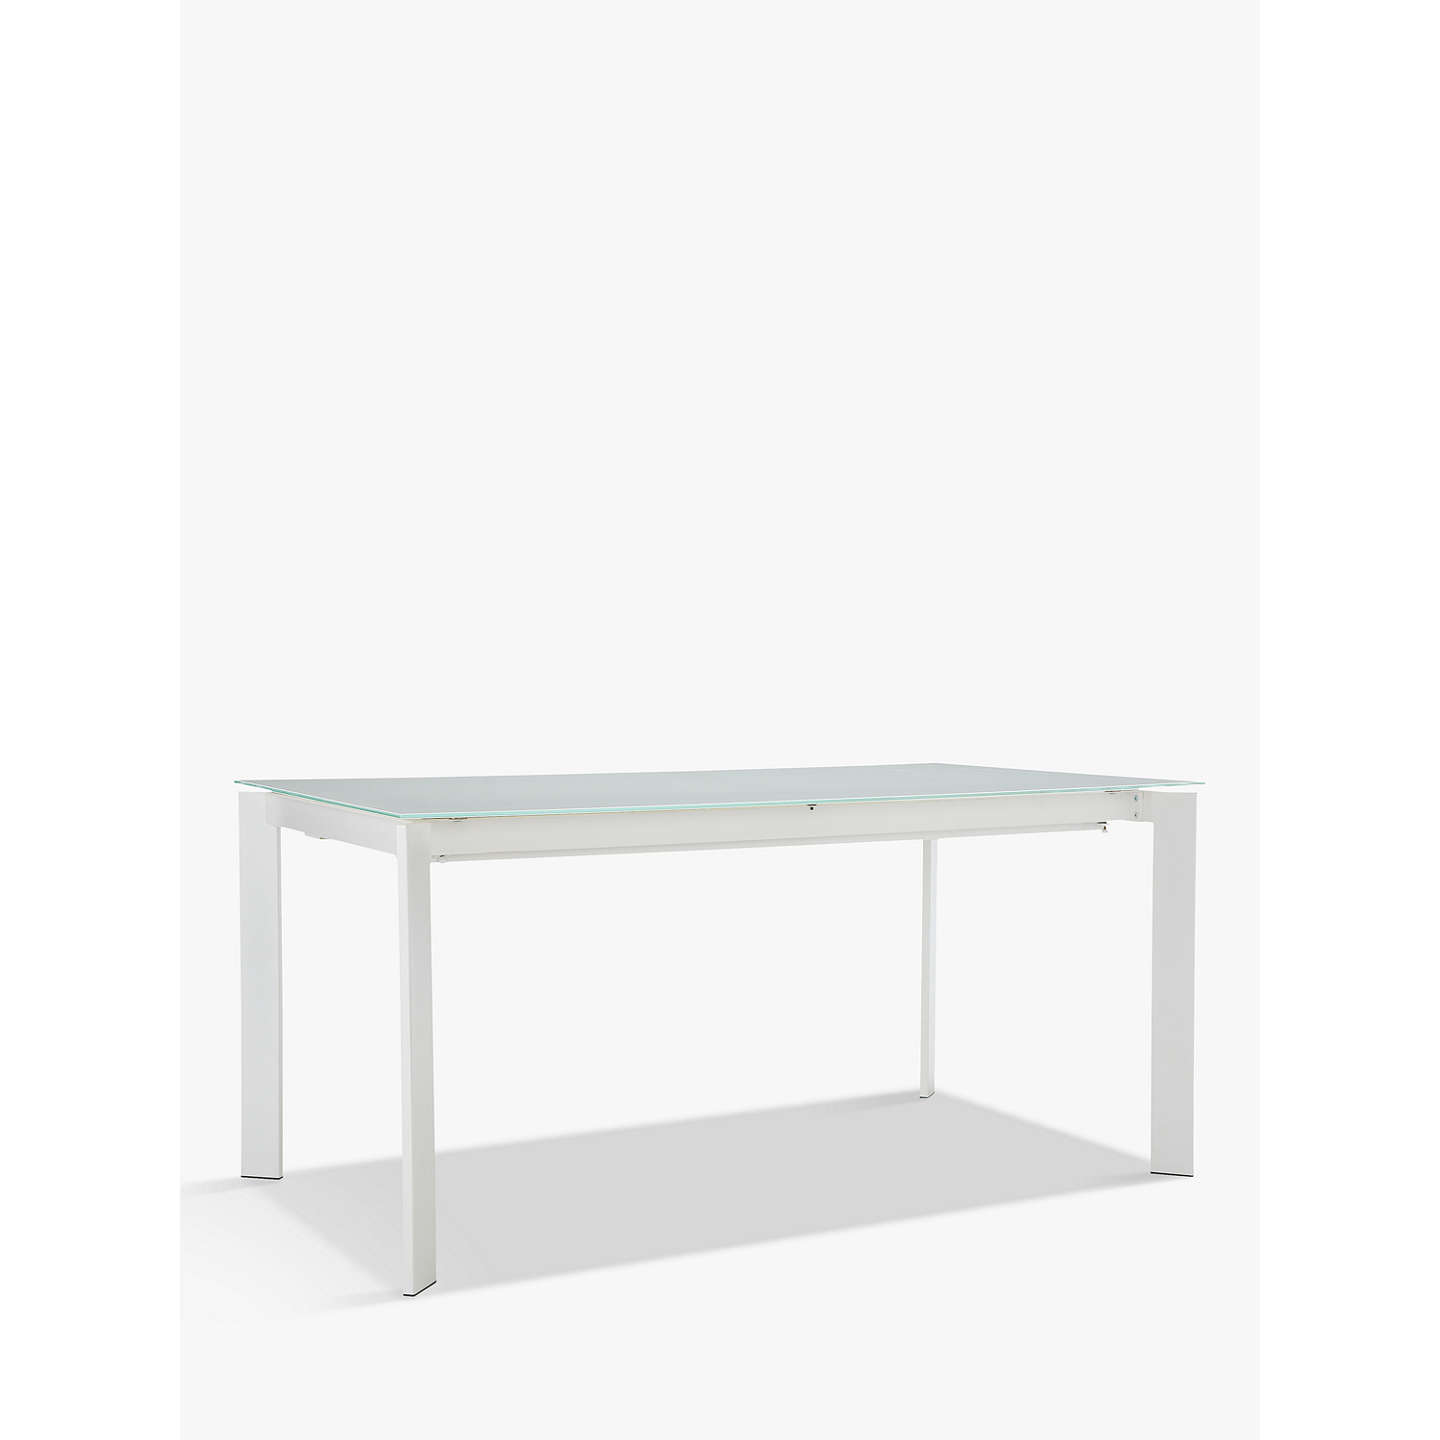 John Lewis Odyssey 6-10 Seater Glass Top Extending Dining